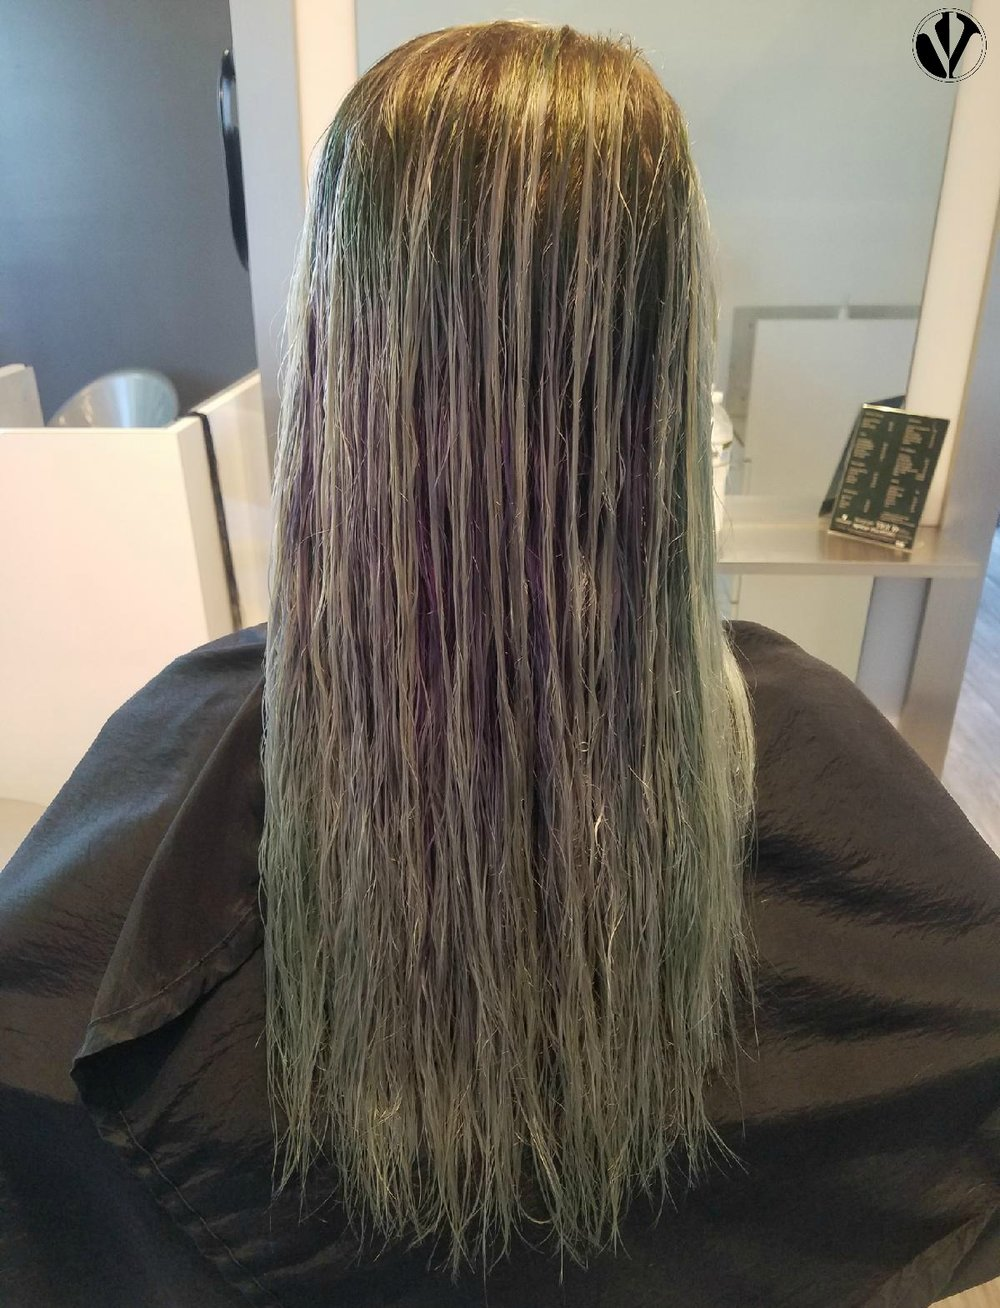 Back to Blonde - This client wants to go from her Mermaid Hair back to her natural blonde